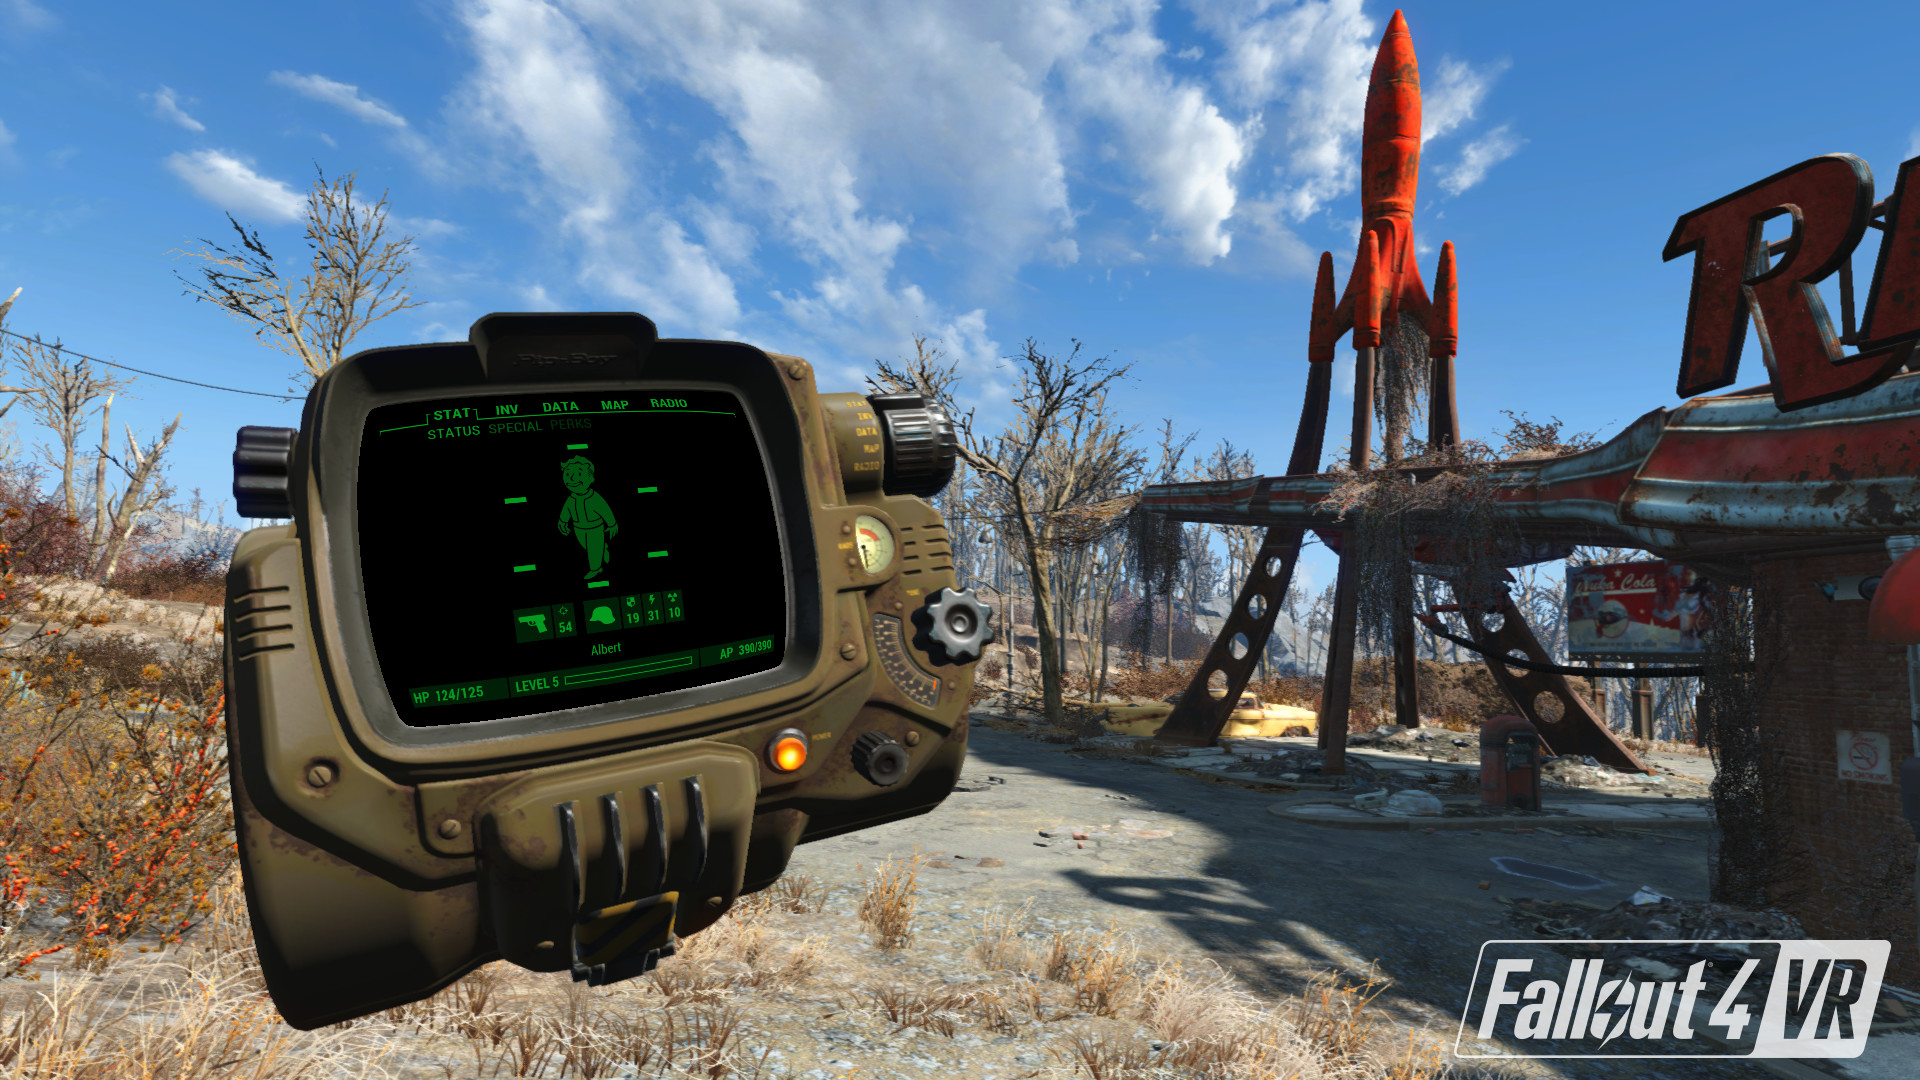 [VR] Fallout 4 VR